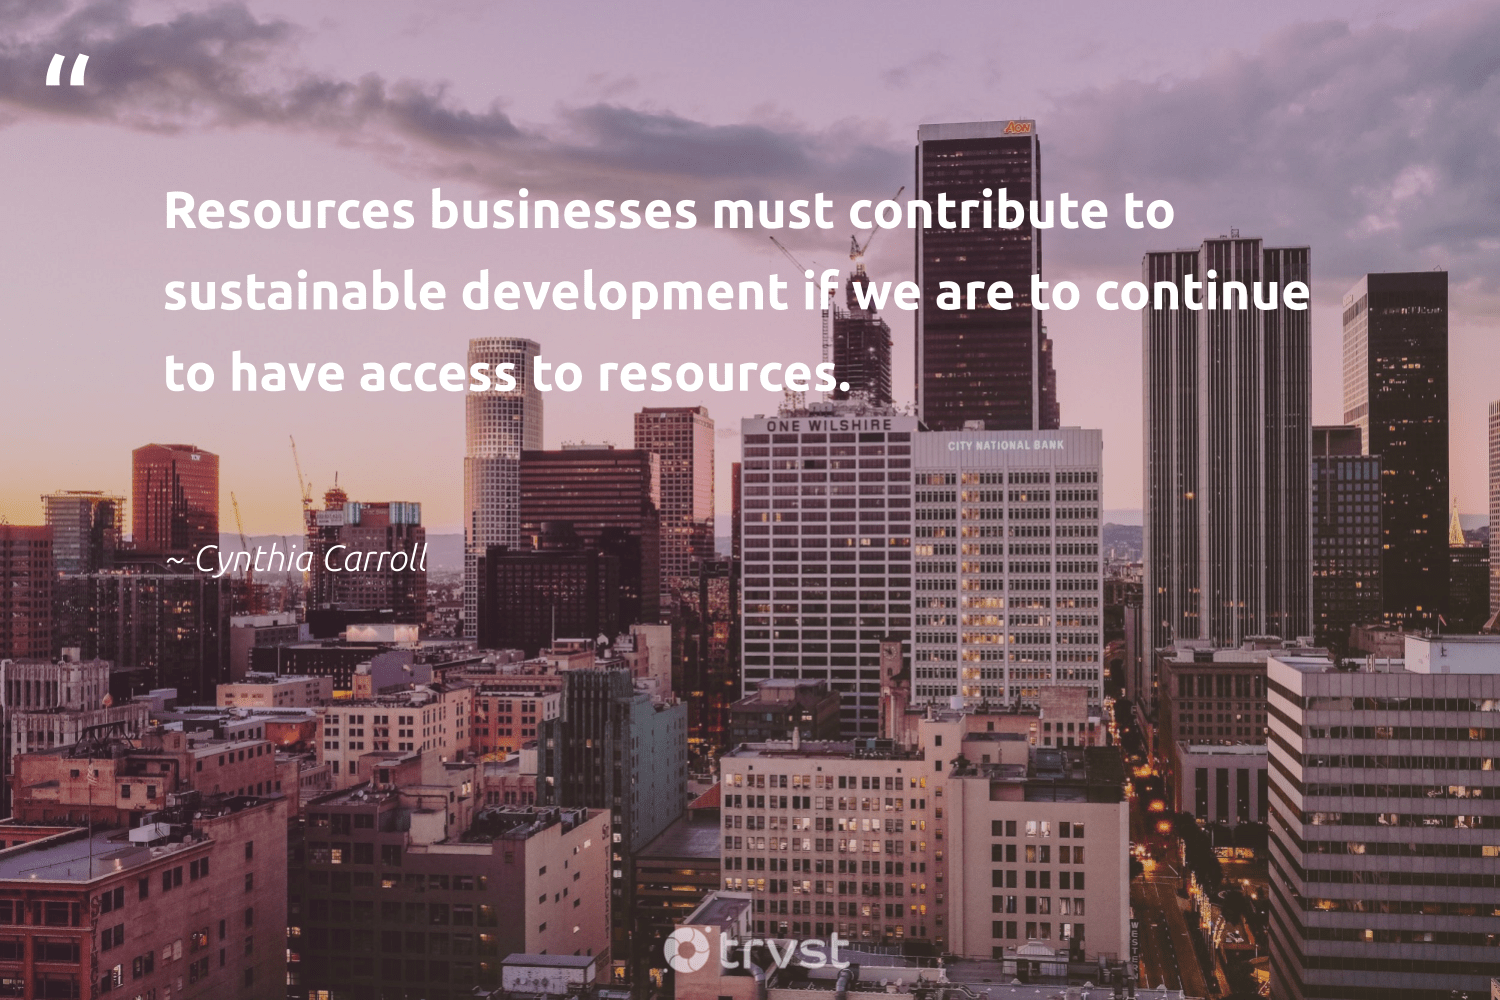 """""""Resources businesses must contribute to sustainable development if we are to continue to have access to resources.""""  - Cynthia Carroll #trvst #quotes #sustainable #development #sustainableliving #dogood #green #takeaction #sustainability #ethicalbusiness #gogreen #planetearthfirst"""